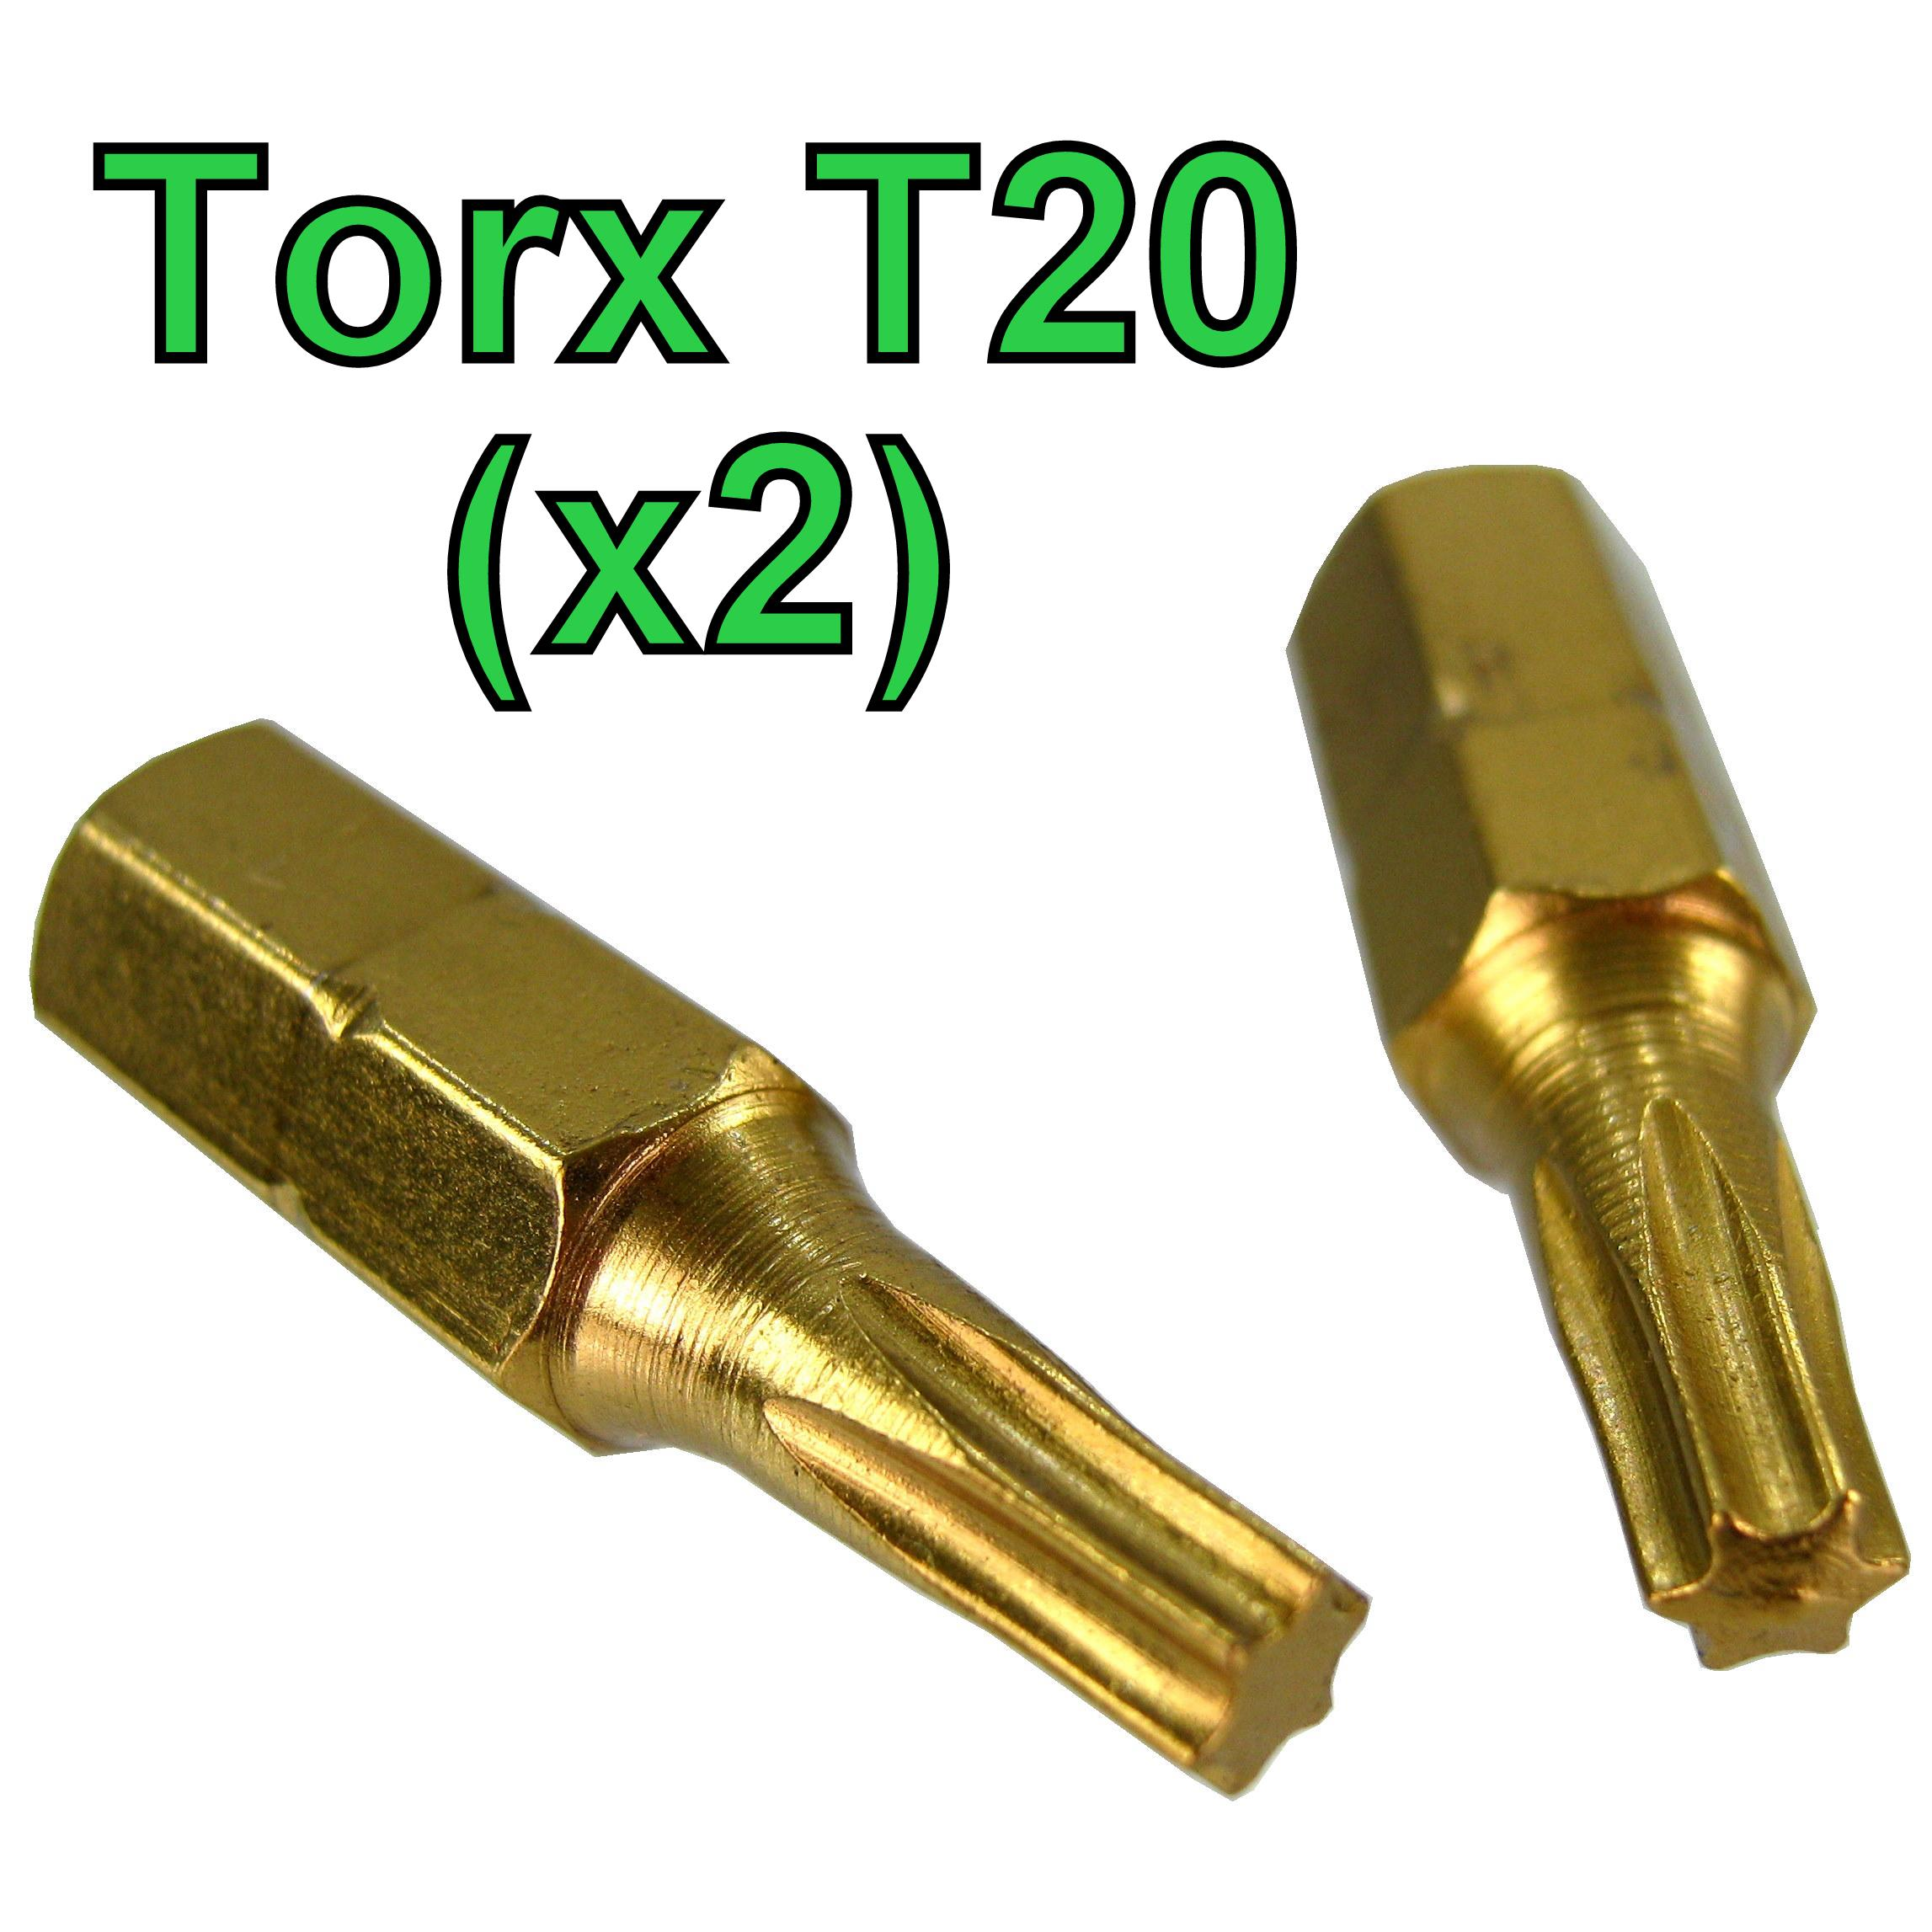 torx t20 screw driver bit 2 pack long life titanium coated star trx gold. Black Bedroom Furniture Sets. Home Design Ideas